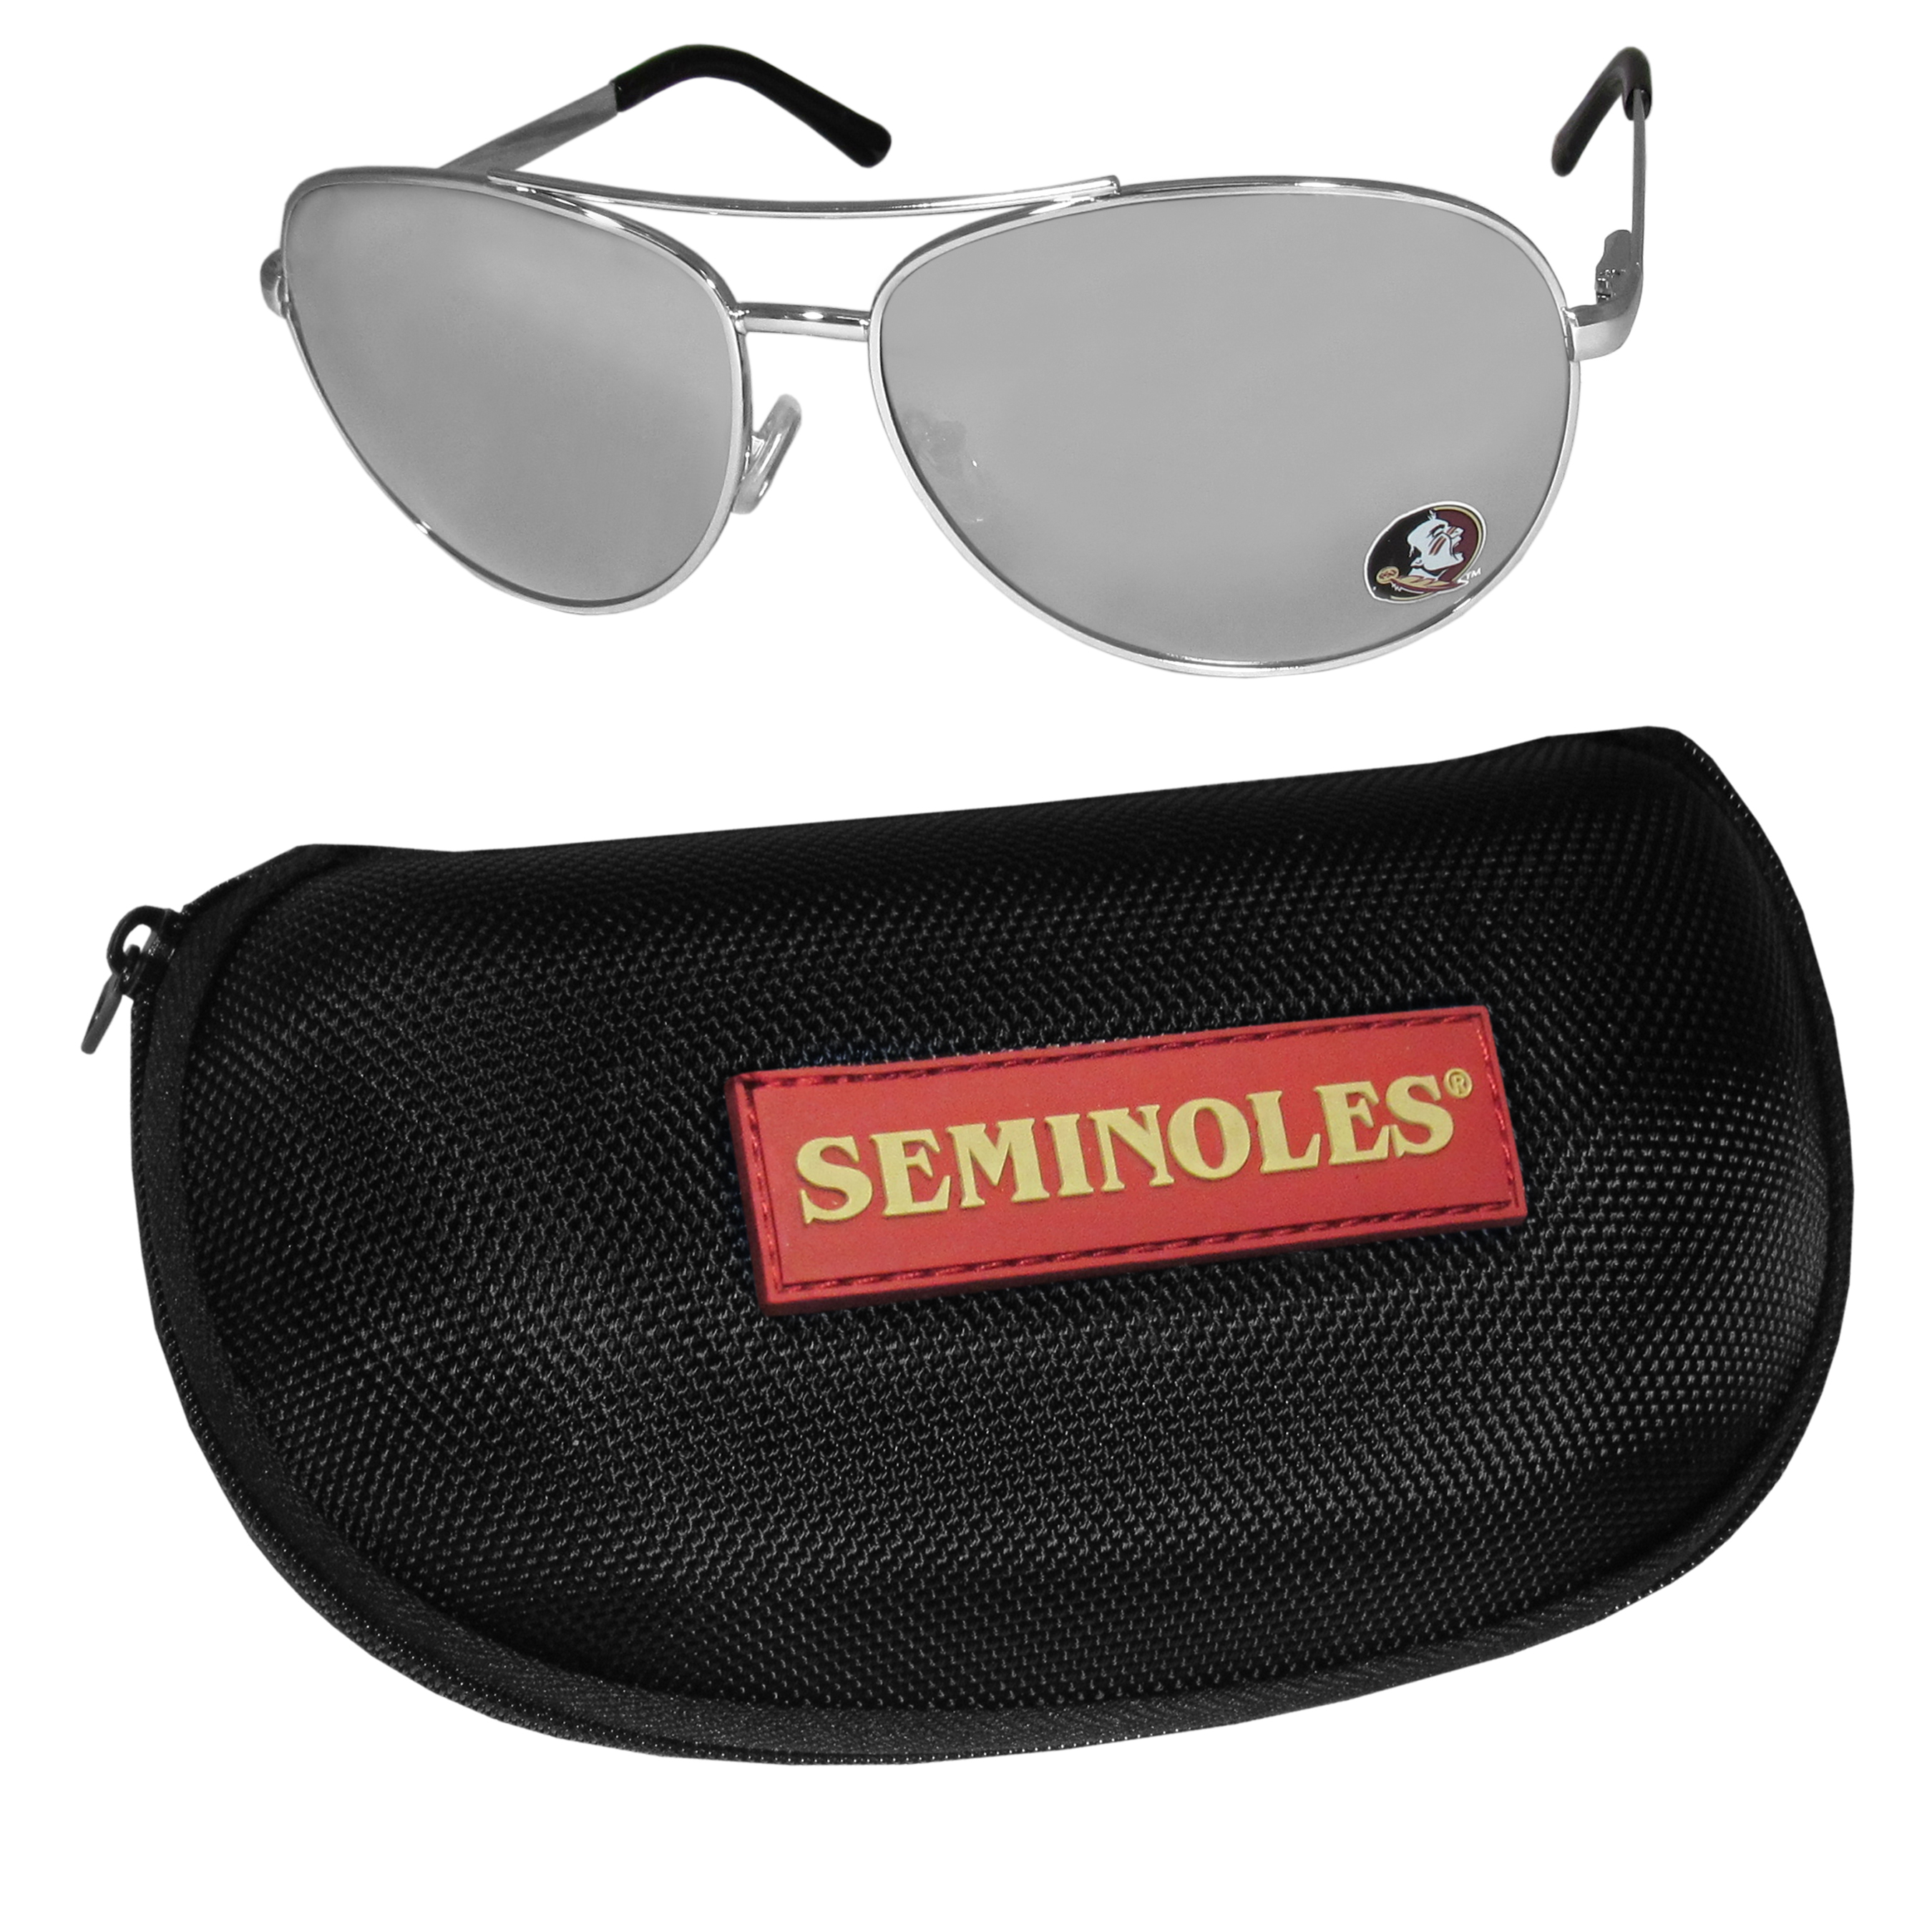 Florida St. Seminoles Aviator Sunglasses and Zippered Carrying Case - Aviator sunglasses are truly an iconic retro fashion statement that never goes out-of-style. Our Florida St. Seminoles  aviator sunglasses pair this classic look with your love of the game. The iridium coated lenses reduce glare while driving, boating, golfing and their 100% UVA/UVB rating provides you with the maximum UV protection for all your outdoor activities. A millennial favorite, these affordable designer frames are the perfect eyewear accessory for a sports fan that is looking for high-quality at an affordable price. The durable, flex hinged frames are tough enough for hiking and camping or if you prefer sun bathing by the pool or on the beach these shades will really stand the test of time. The sunglasses come with a hard shell zippered case which has a large team logo on the lid that will make even the most die-hard fan proud!